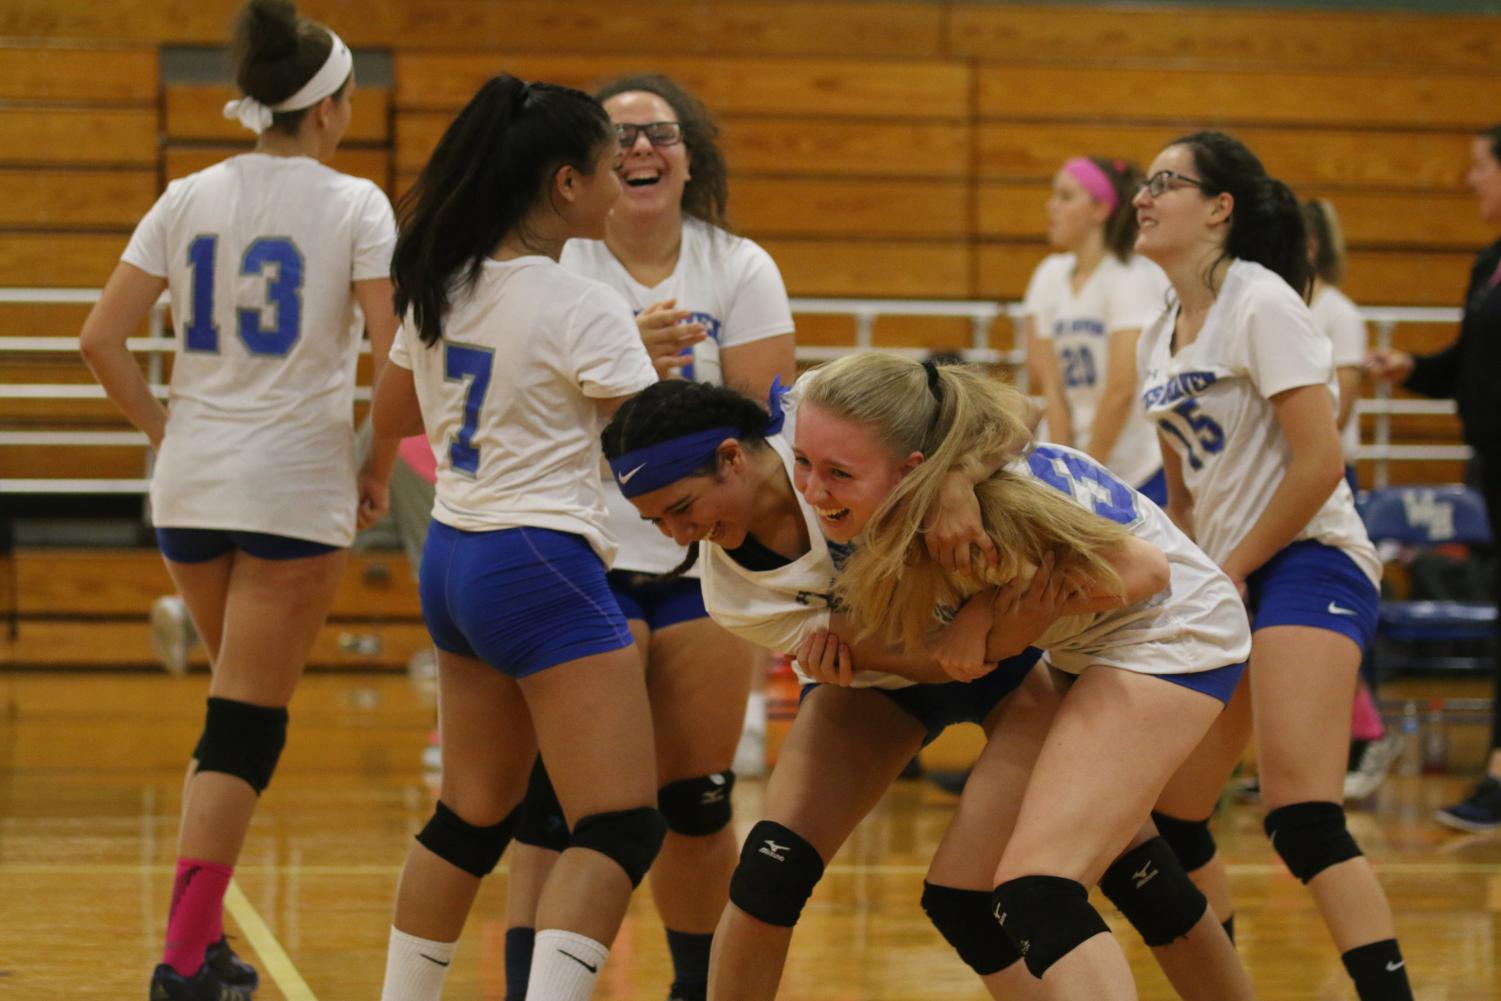 The Westies celebrate after senior Kara Erickson makes a good hit in an October match against Lyman Hall.